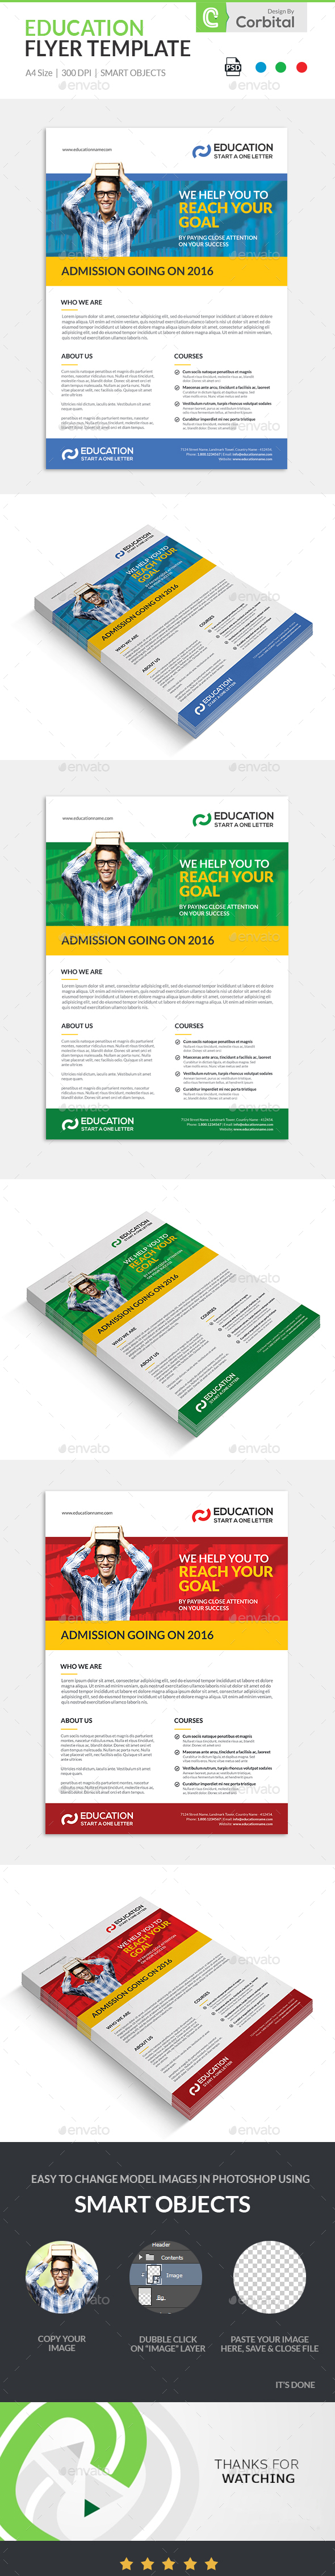 Education Flyer Template - Corporate Flyers